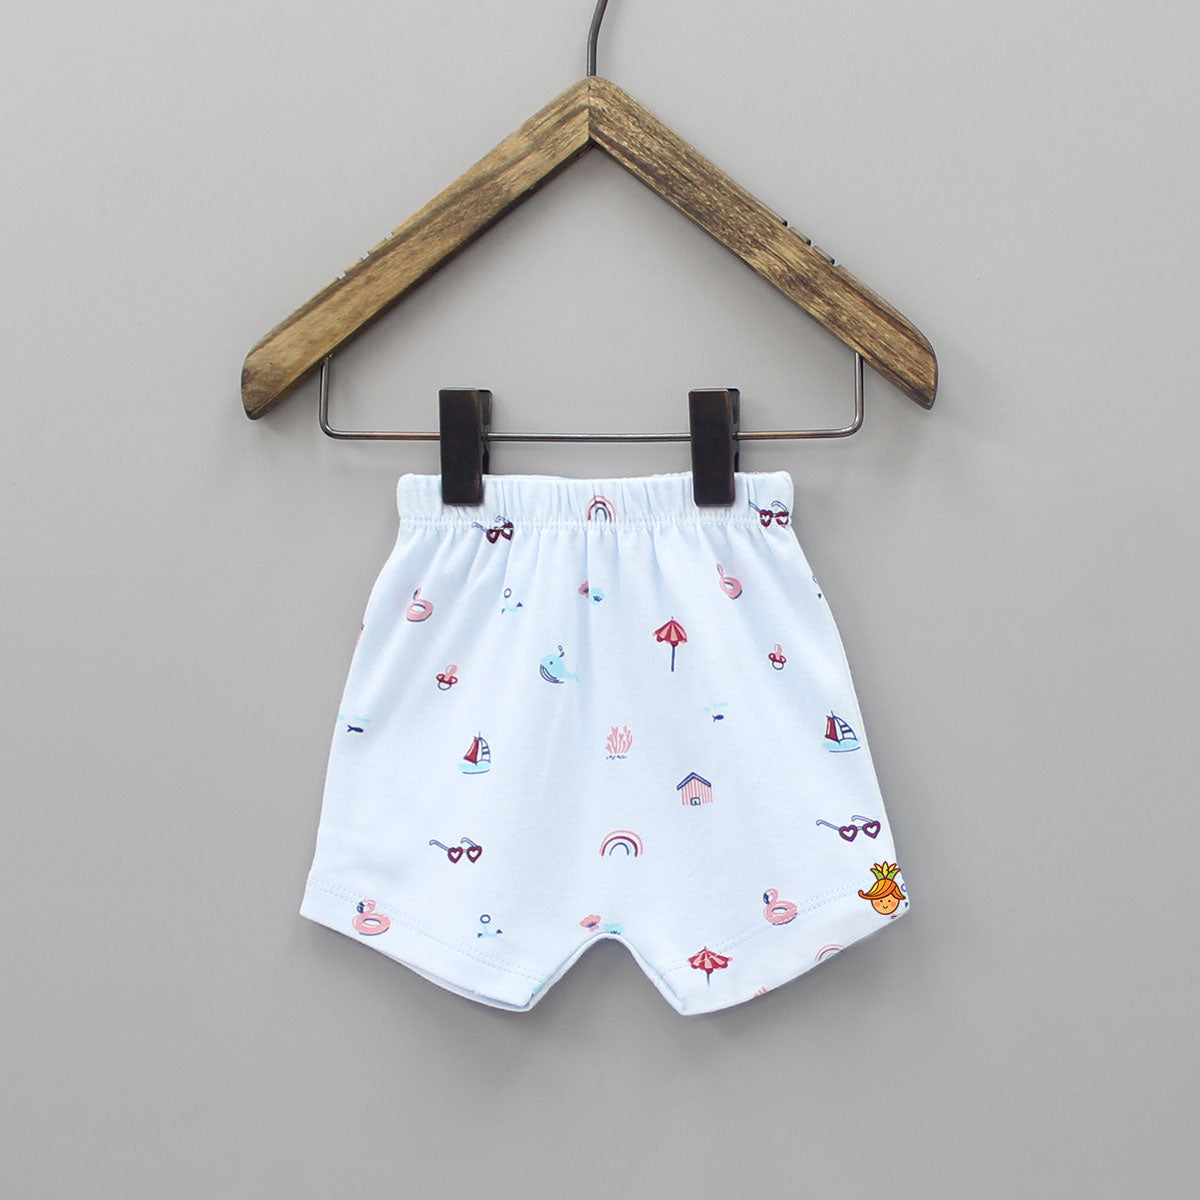 Beach Print Cotton Shorts